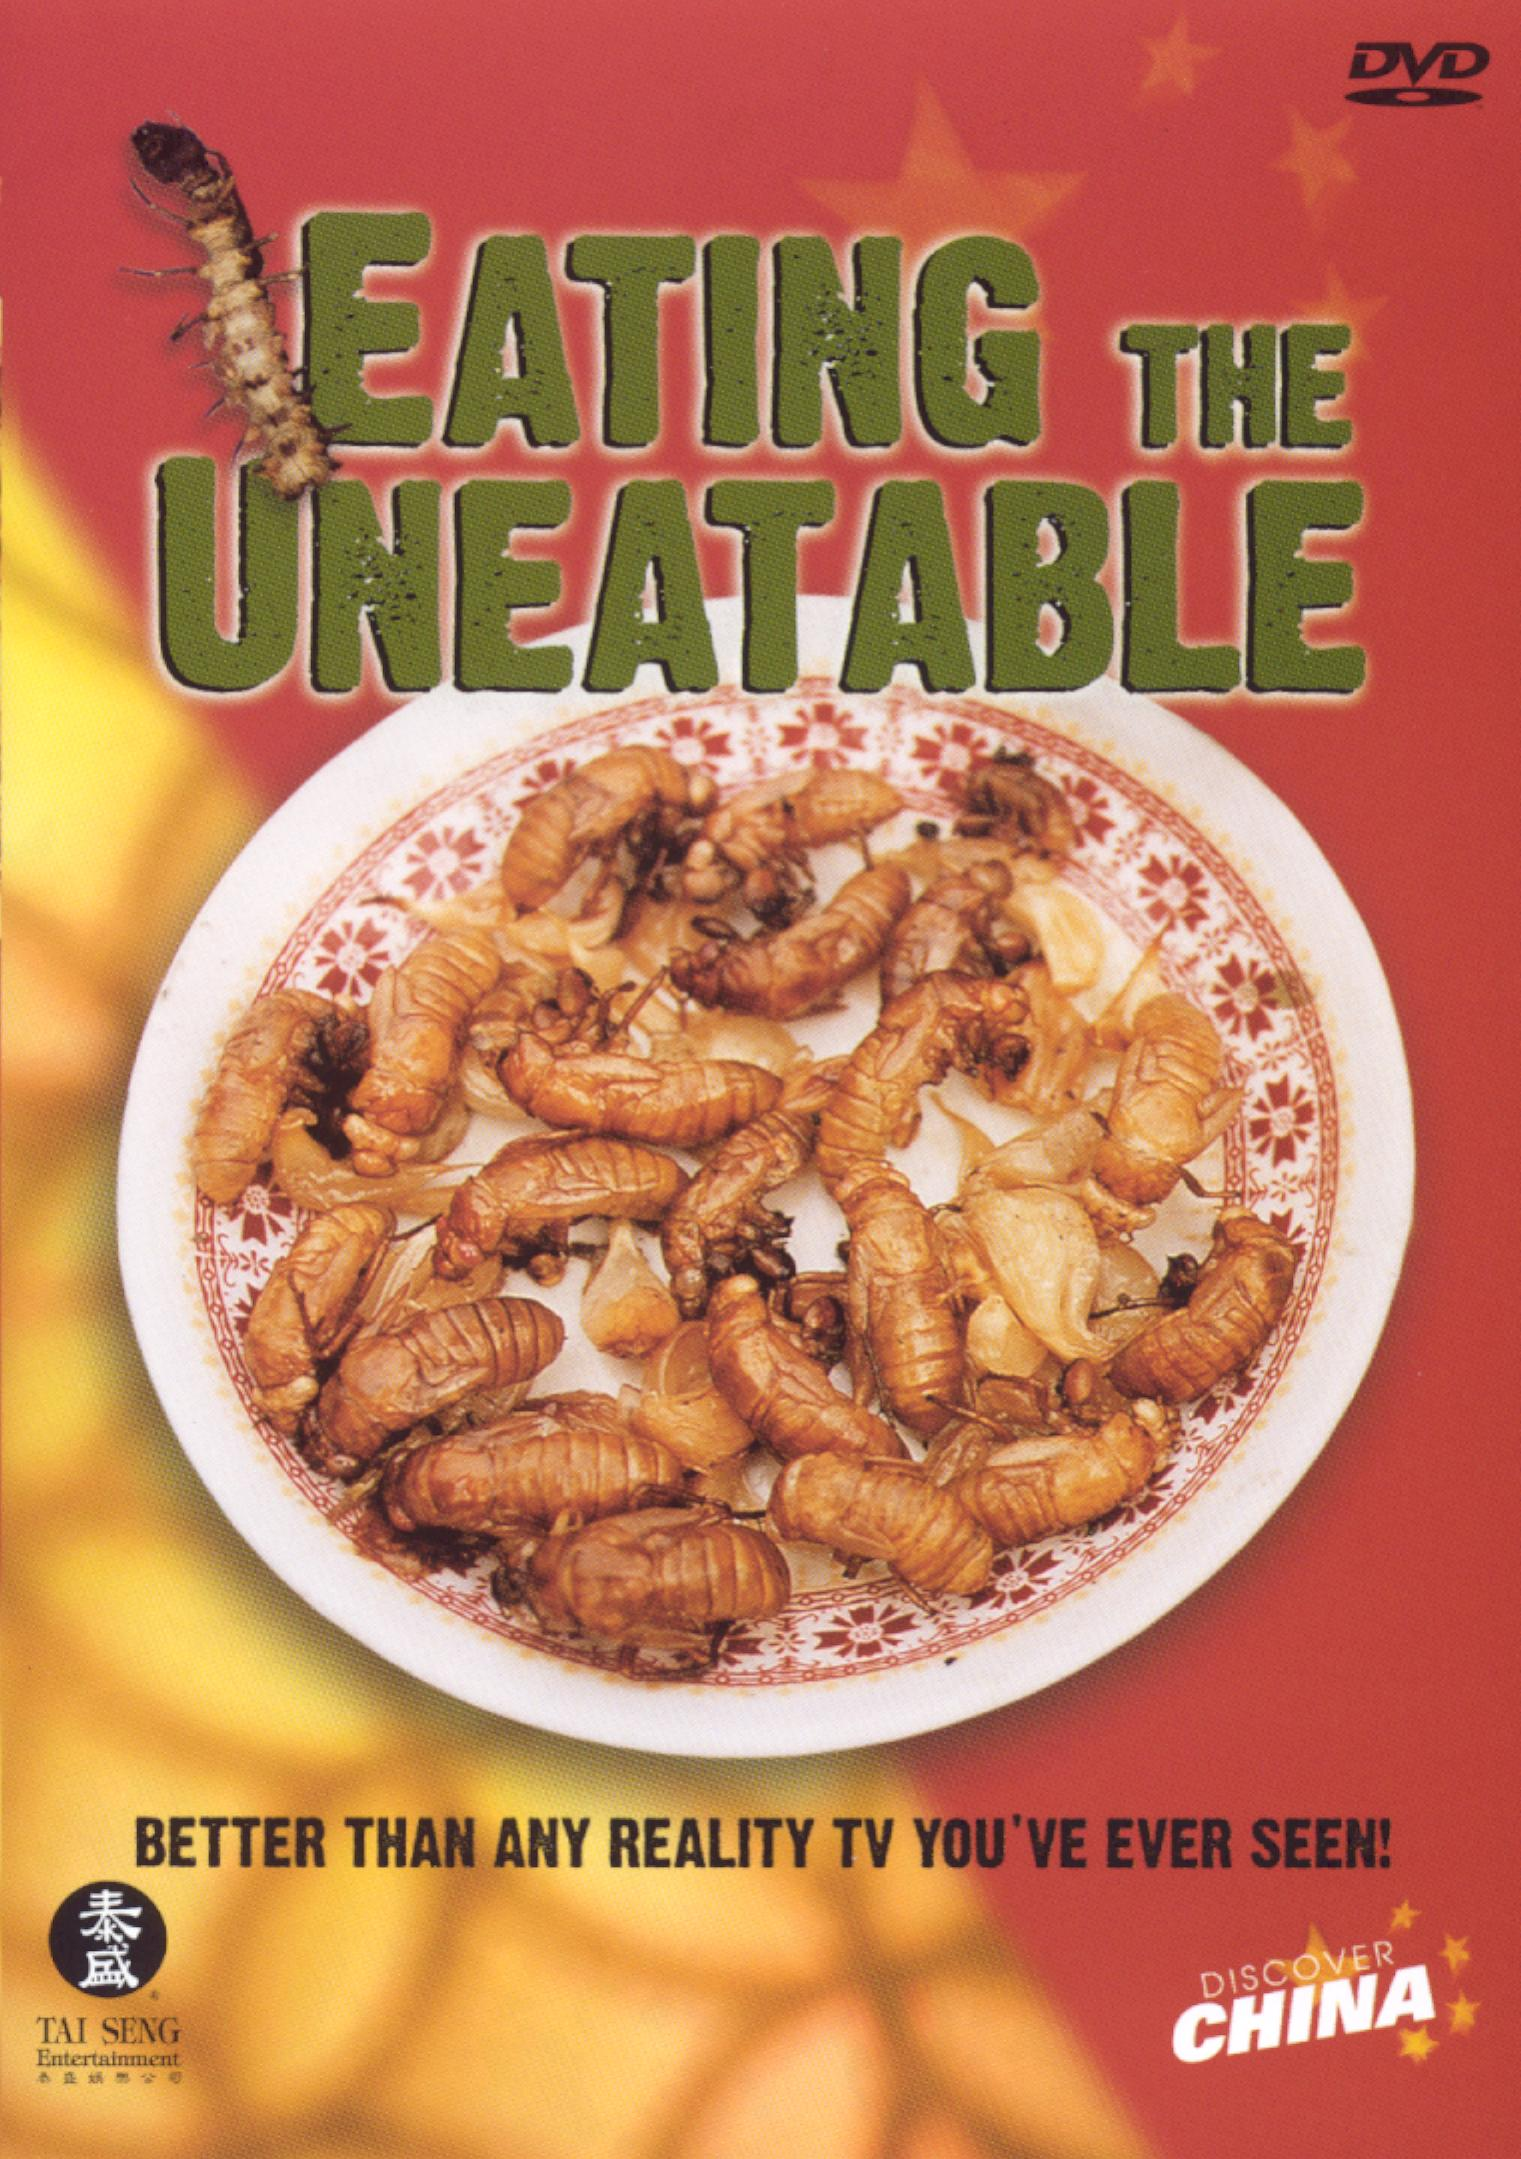 Eating the Uneatable